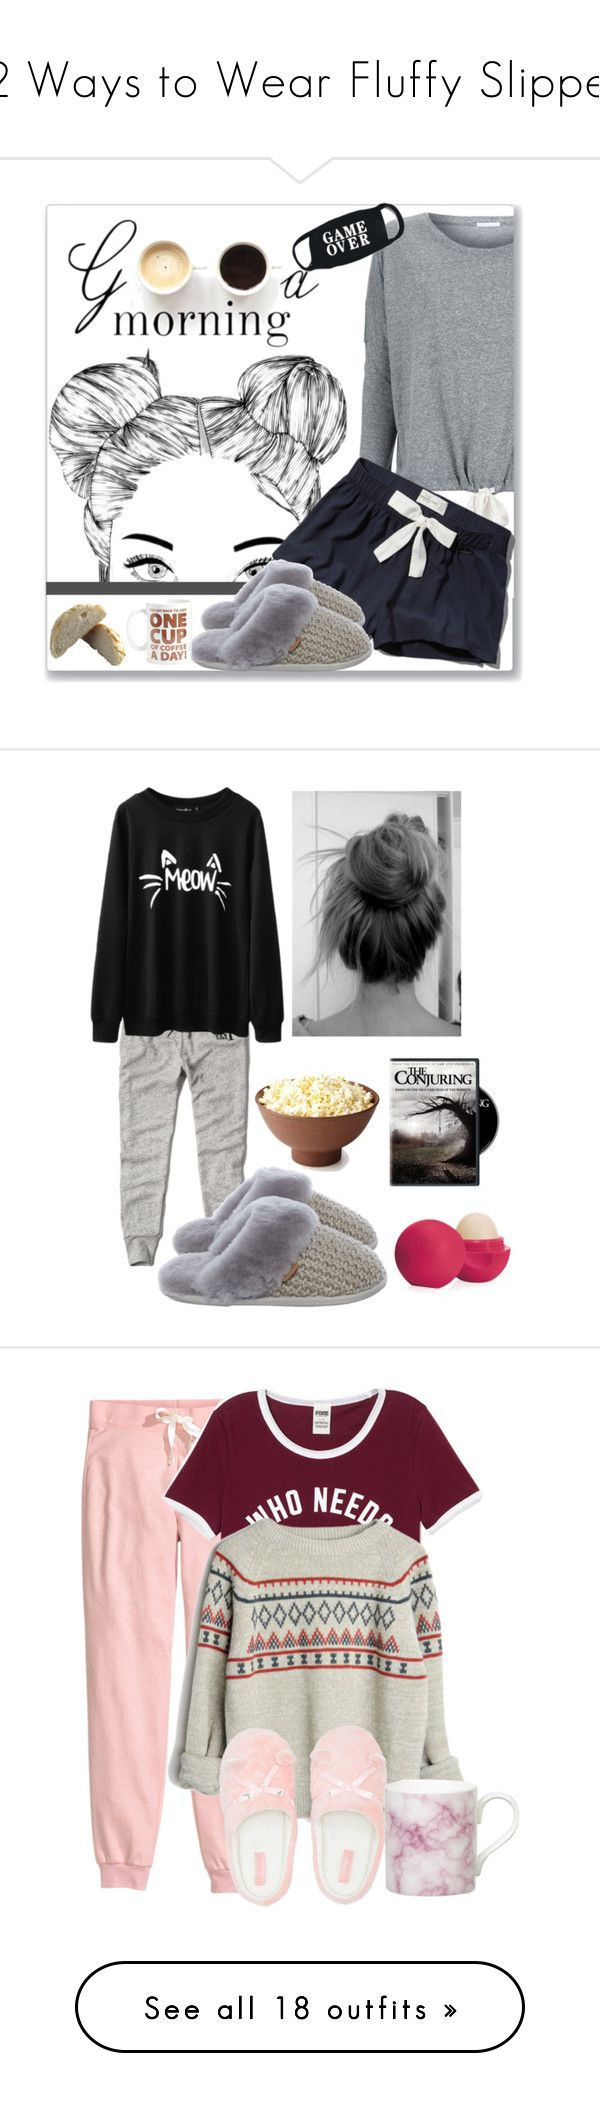 """""""12 Ways to Wear Fluffy Slippers"""" by polyvore-editorial ❤ liked on Polyvore featuring slippers, waystowear, Eberjey, Abercrombie & Fitch, Just Sheepskin, Lulu*s, Big Mouth, Eos, shoes and grey"""